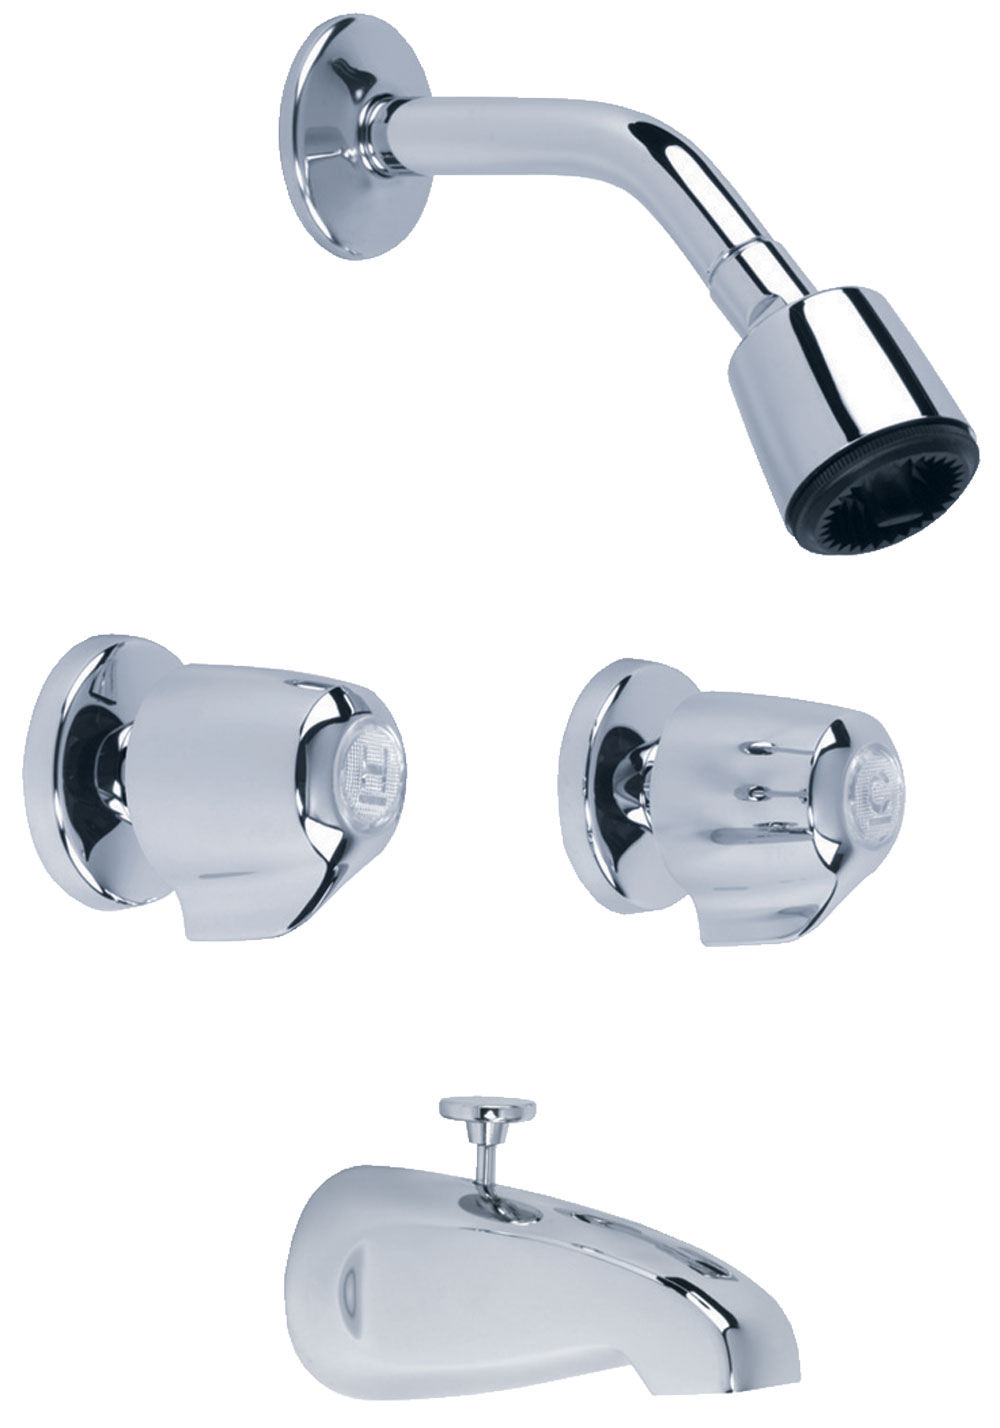 Gerber Classics 6 Inch Centers Two Handle Tub Shower Fitting 20